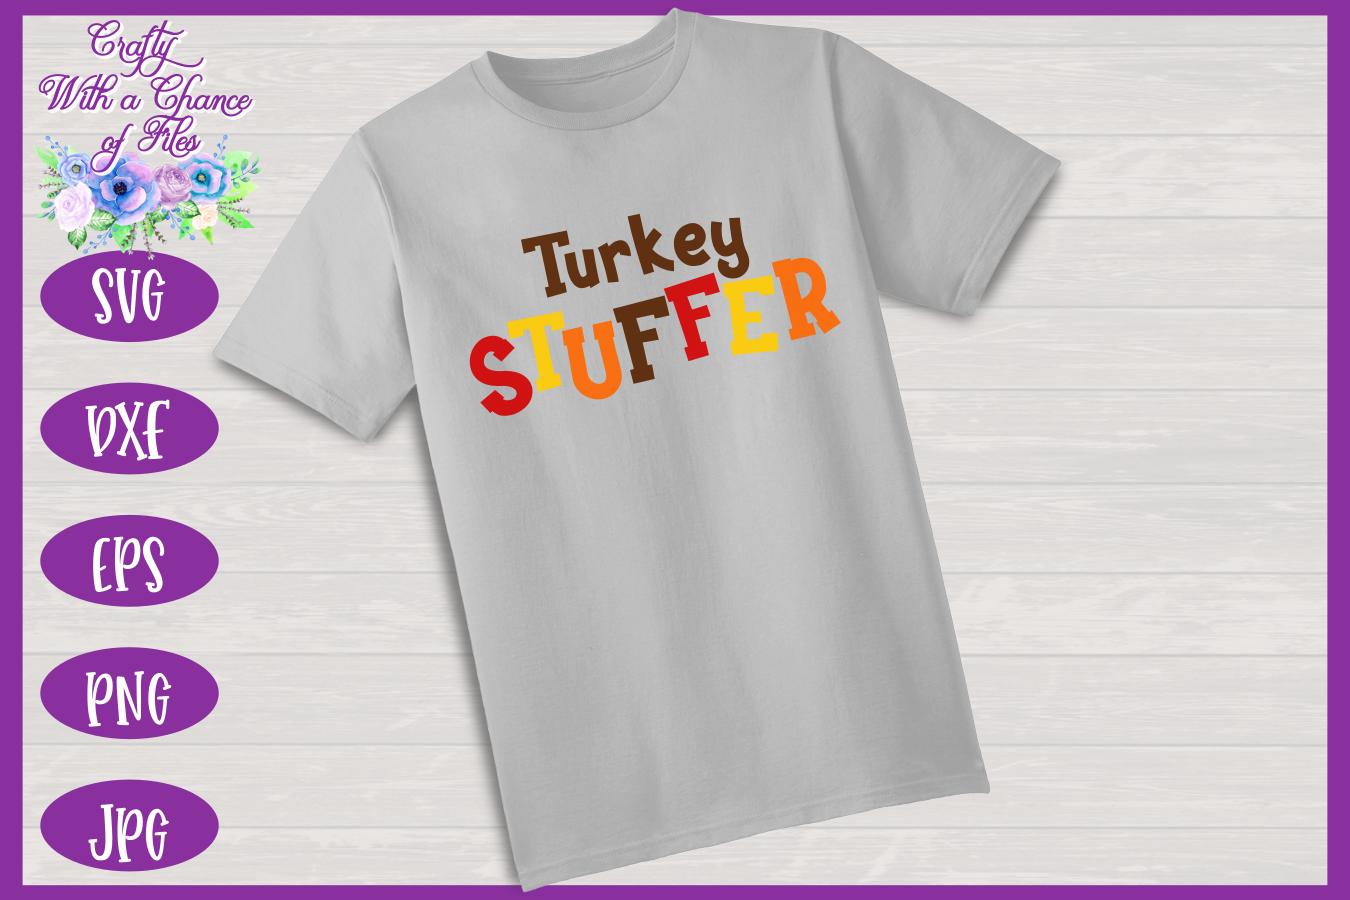 Thanksgiving SVG | Turkey Stuffer SVG | Funny Dad to Be SVG example image 2